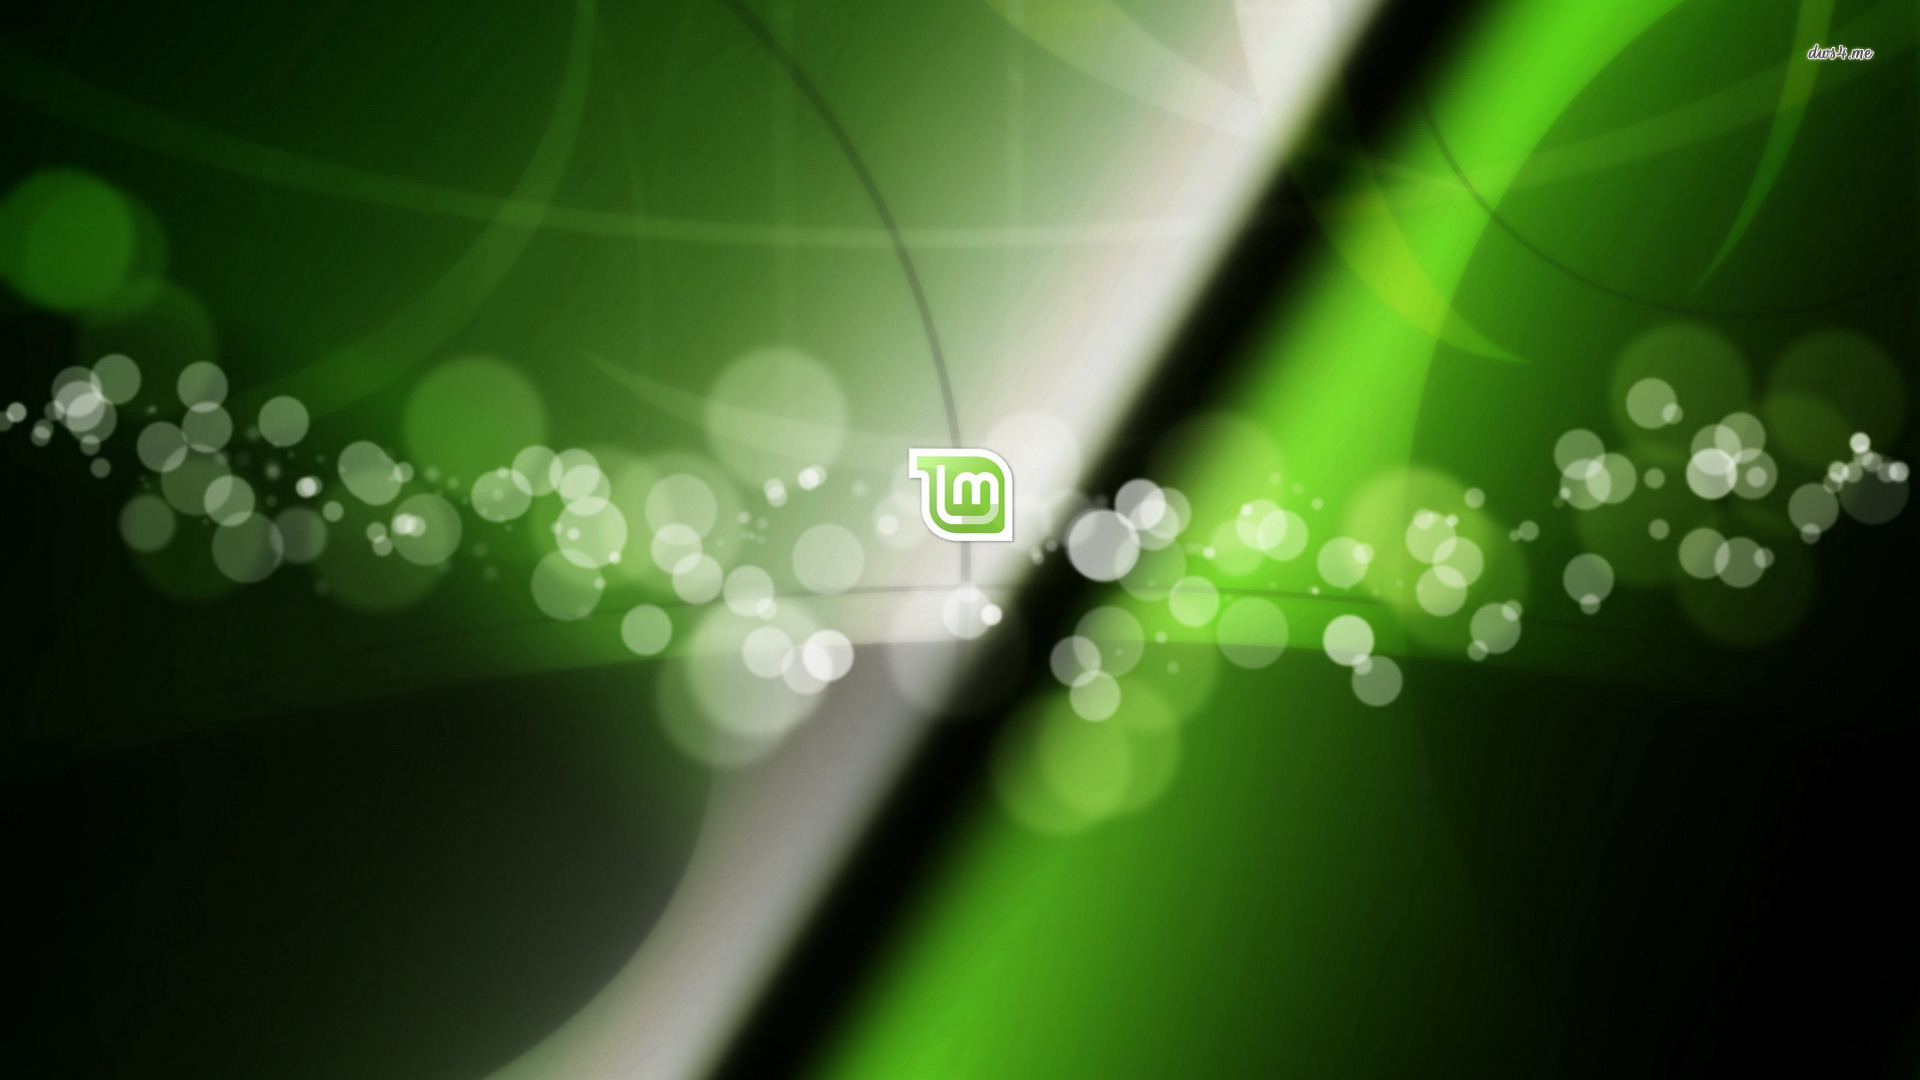 Linux Mint wallpaper   Computer wallpapers   3926 1920x1080